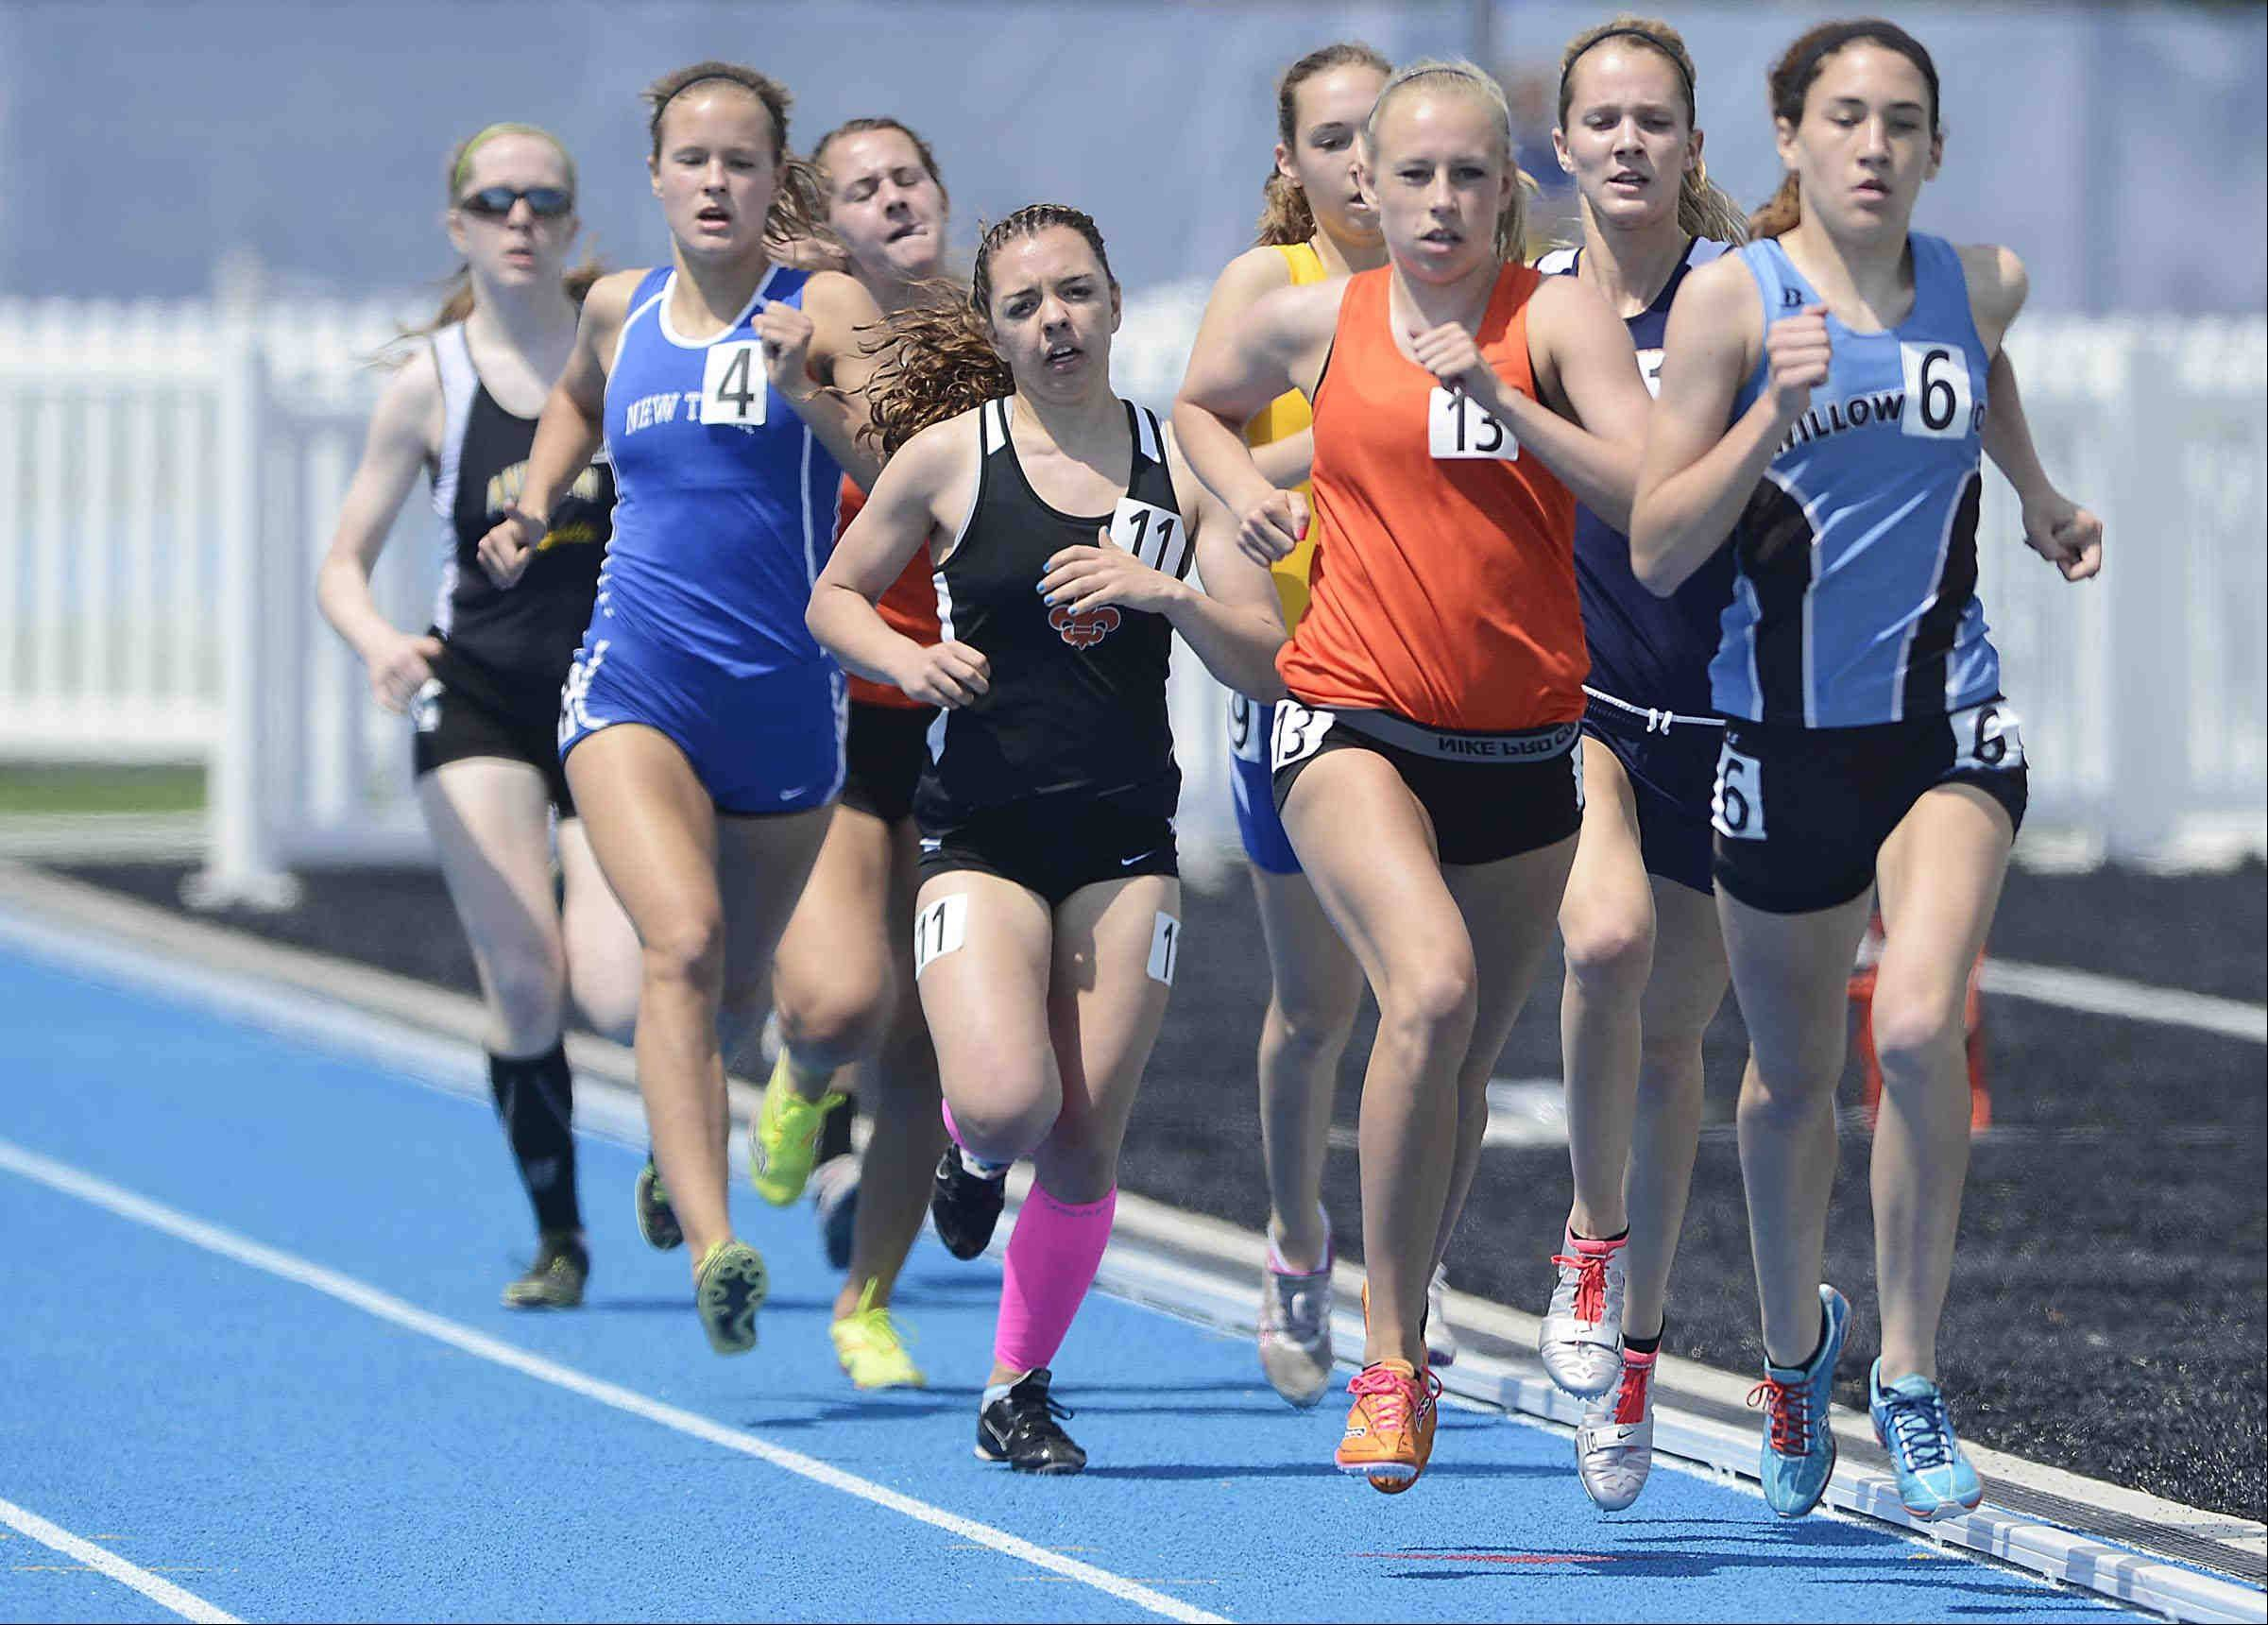 Willowbrook�s Molly Krawczykowski, right, Wheaton Warrenville South�s McKenna Kiple, middle, and St. Charles East�s Corrin Adams, left, control the lane in their heat of the 800 meter run Friday at the Class 3A girls state track and field preliminaries at O�Brien Stadium at Eastern Illinois University in Charleston.